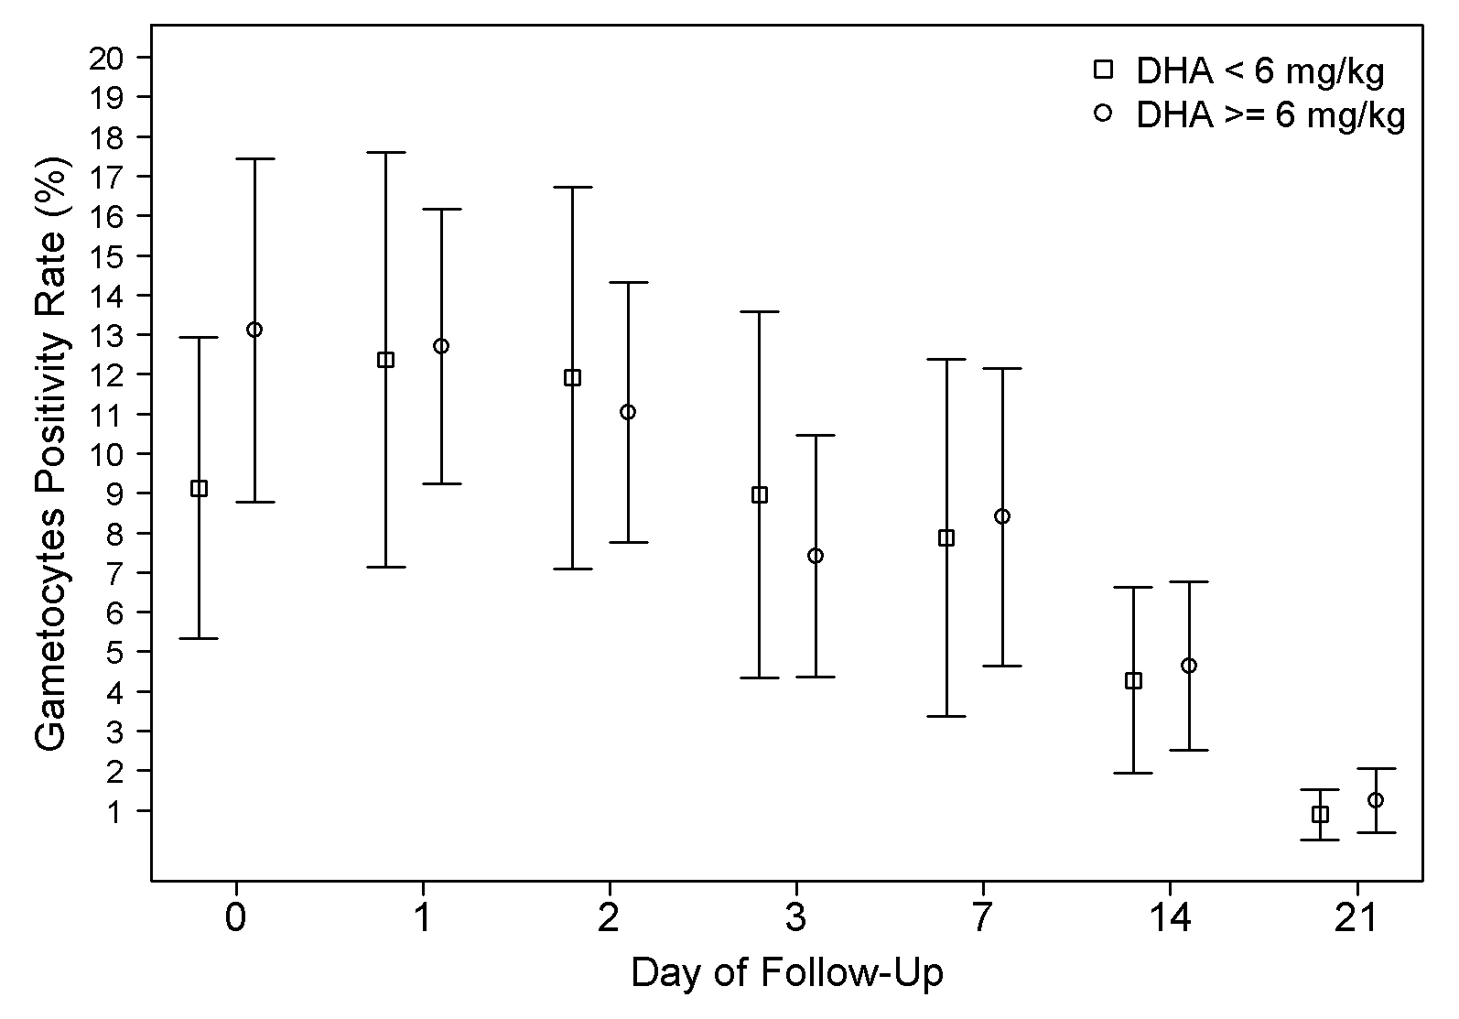 Gametocyte positivity rate (GPR) during follow-up.